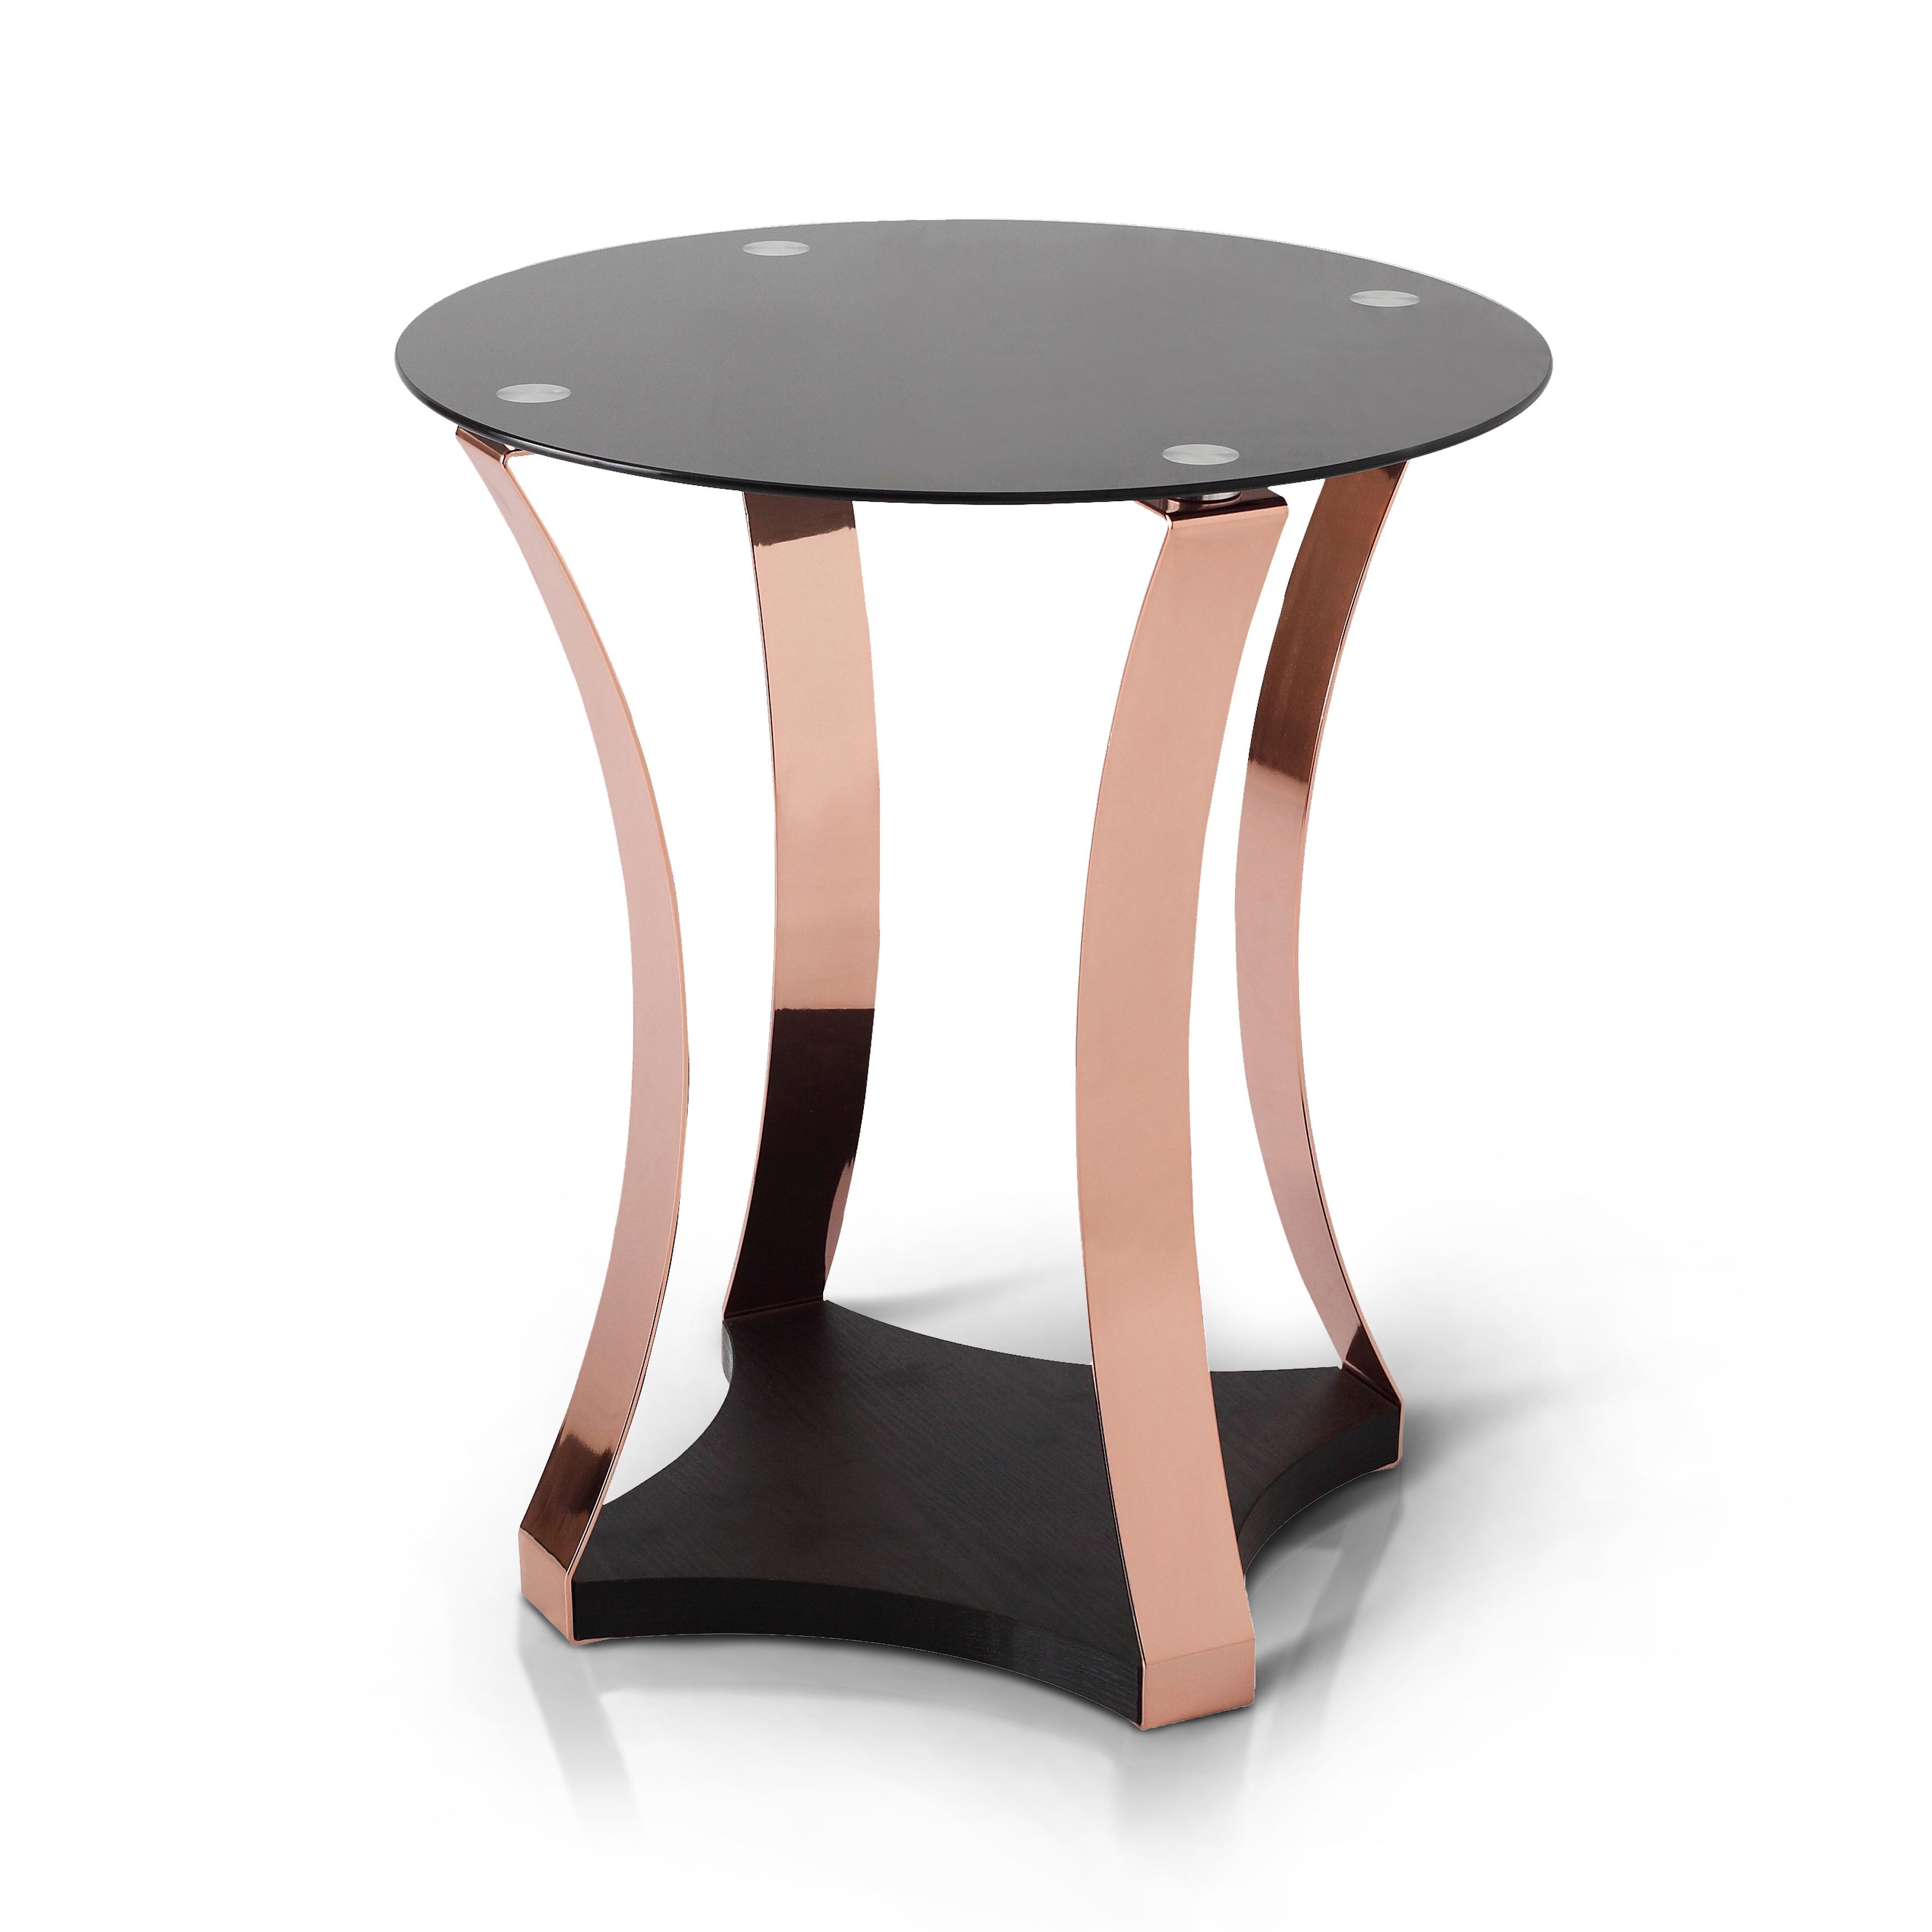 Furniture of america rosella contemporary rose gold and black